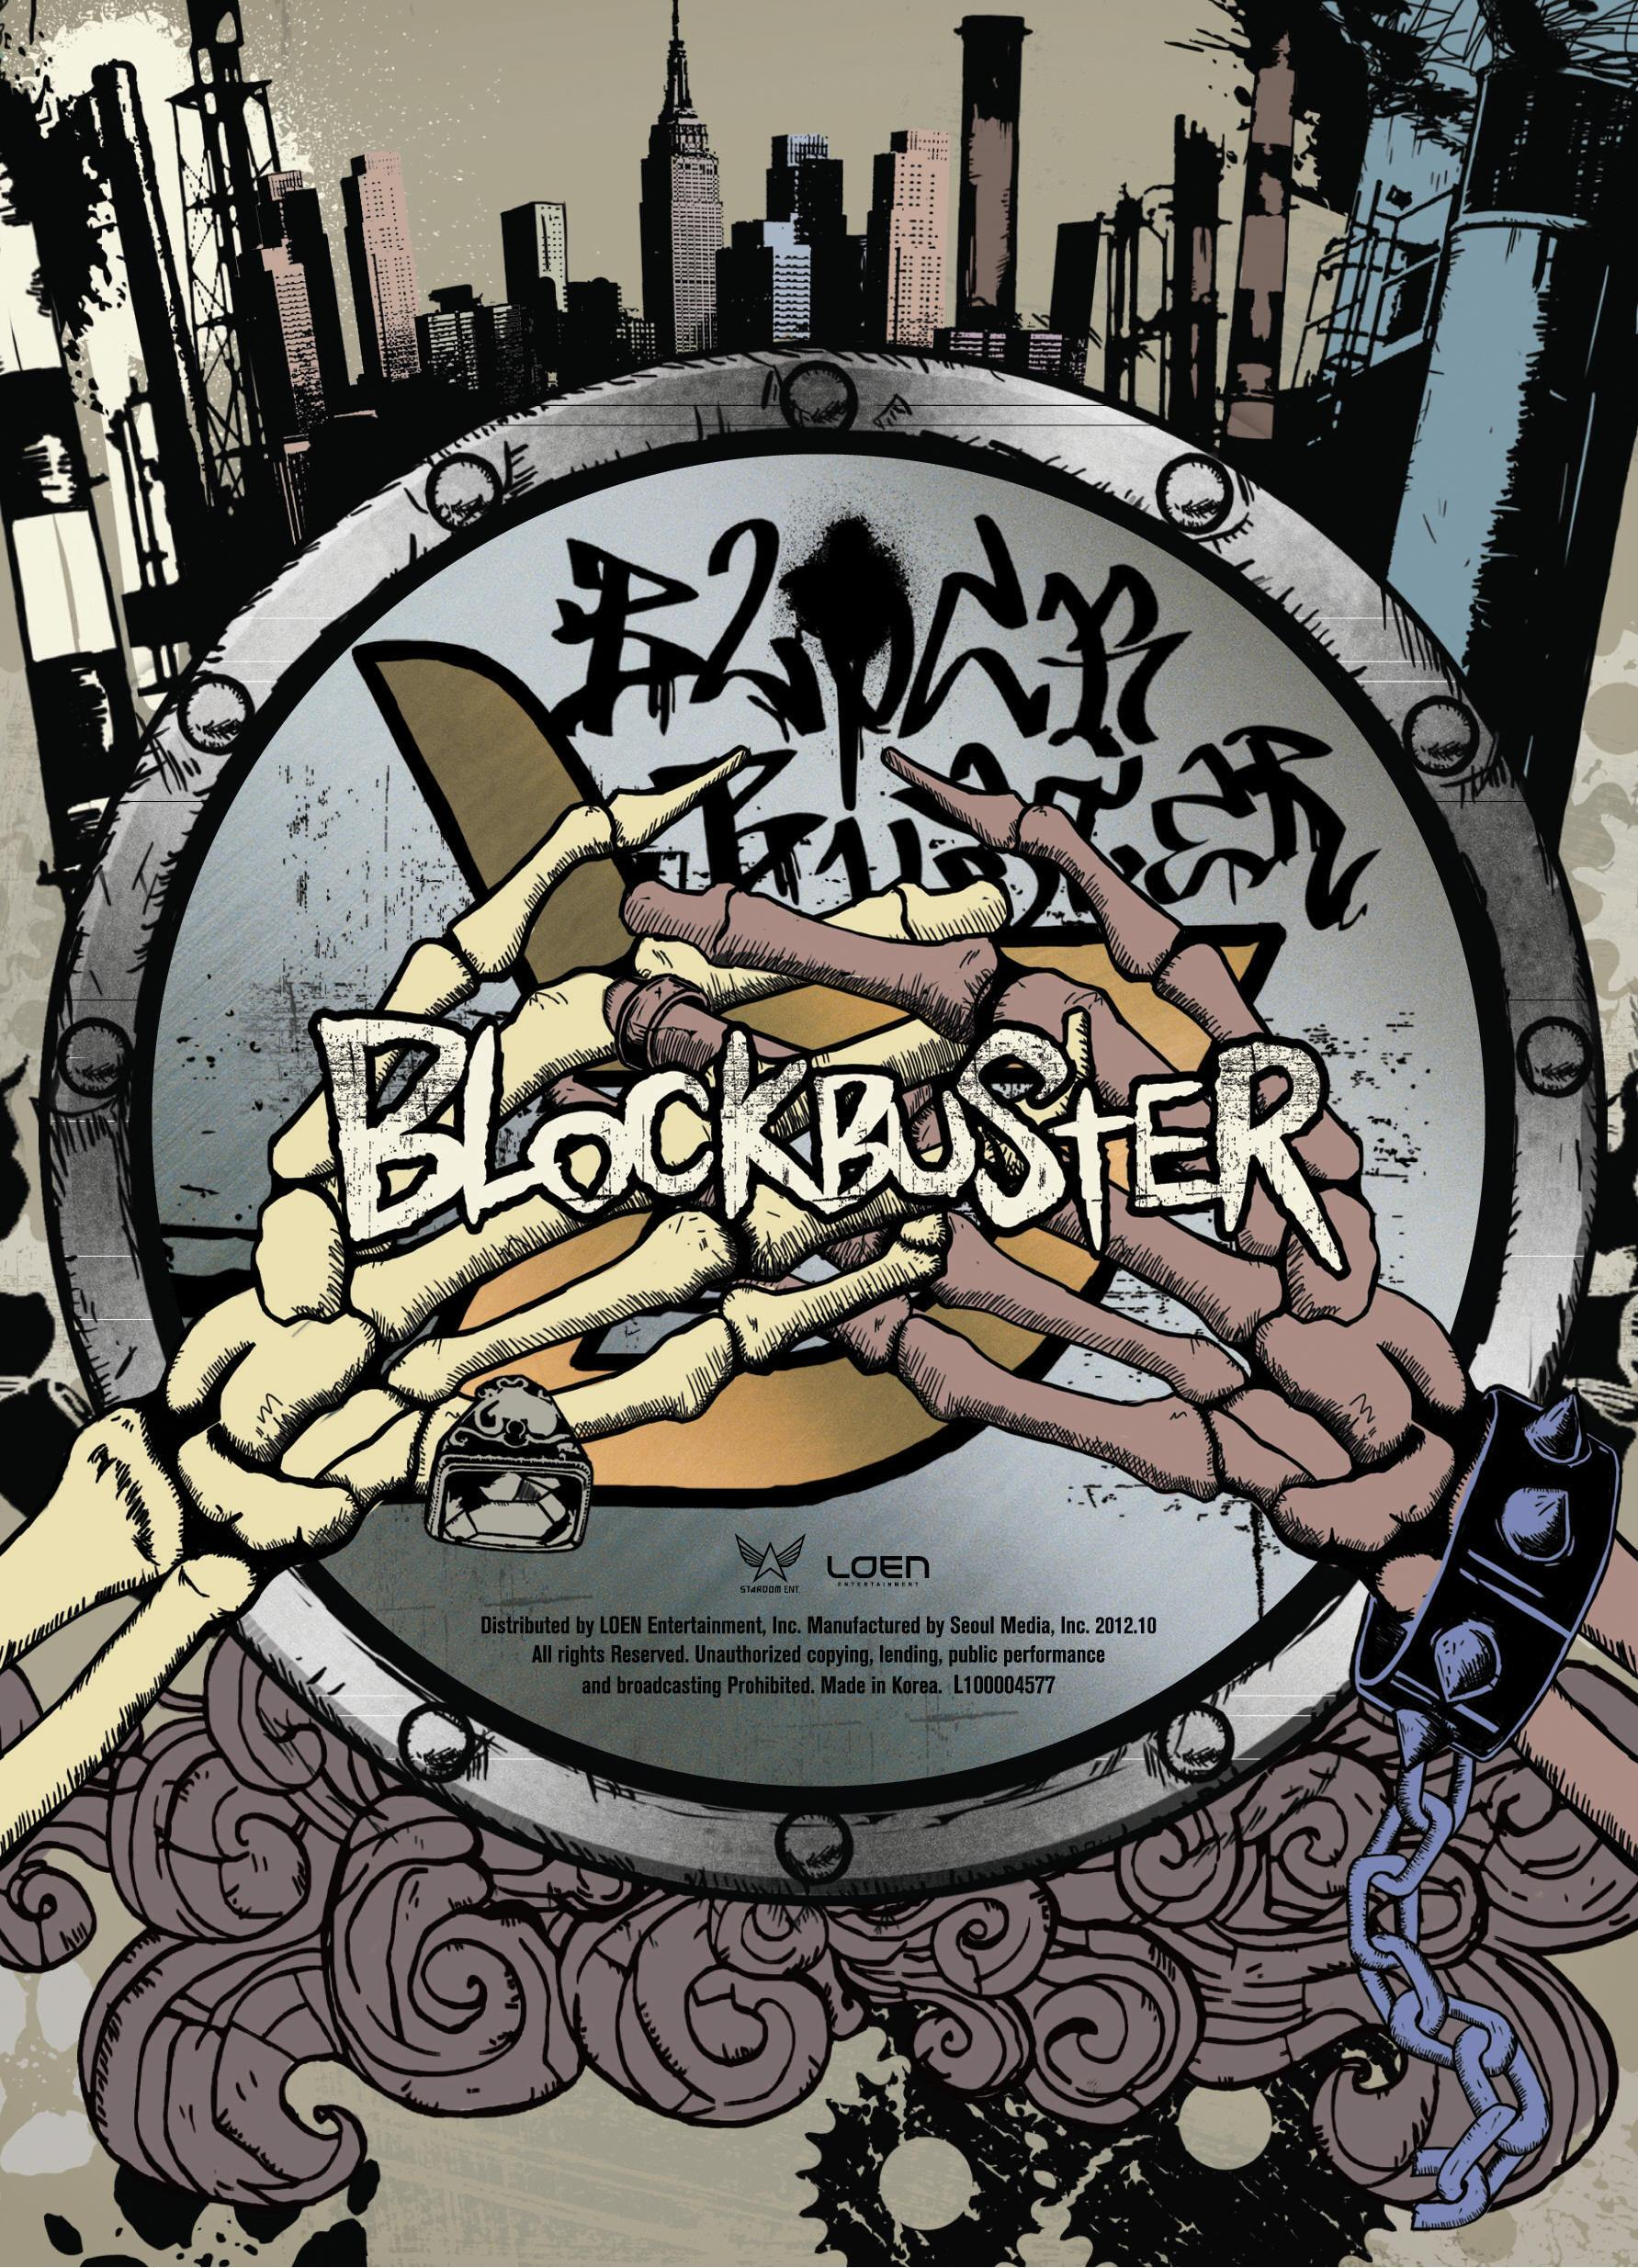 [Album] Block B - Blockbuster [VOL. 1]